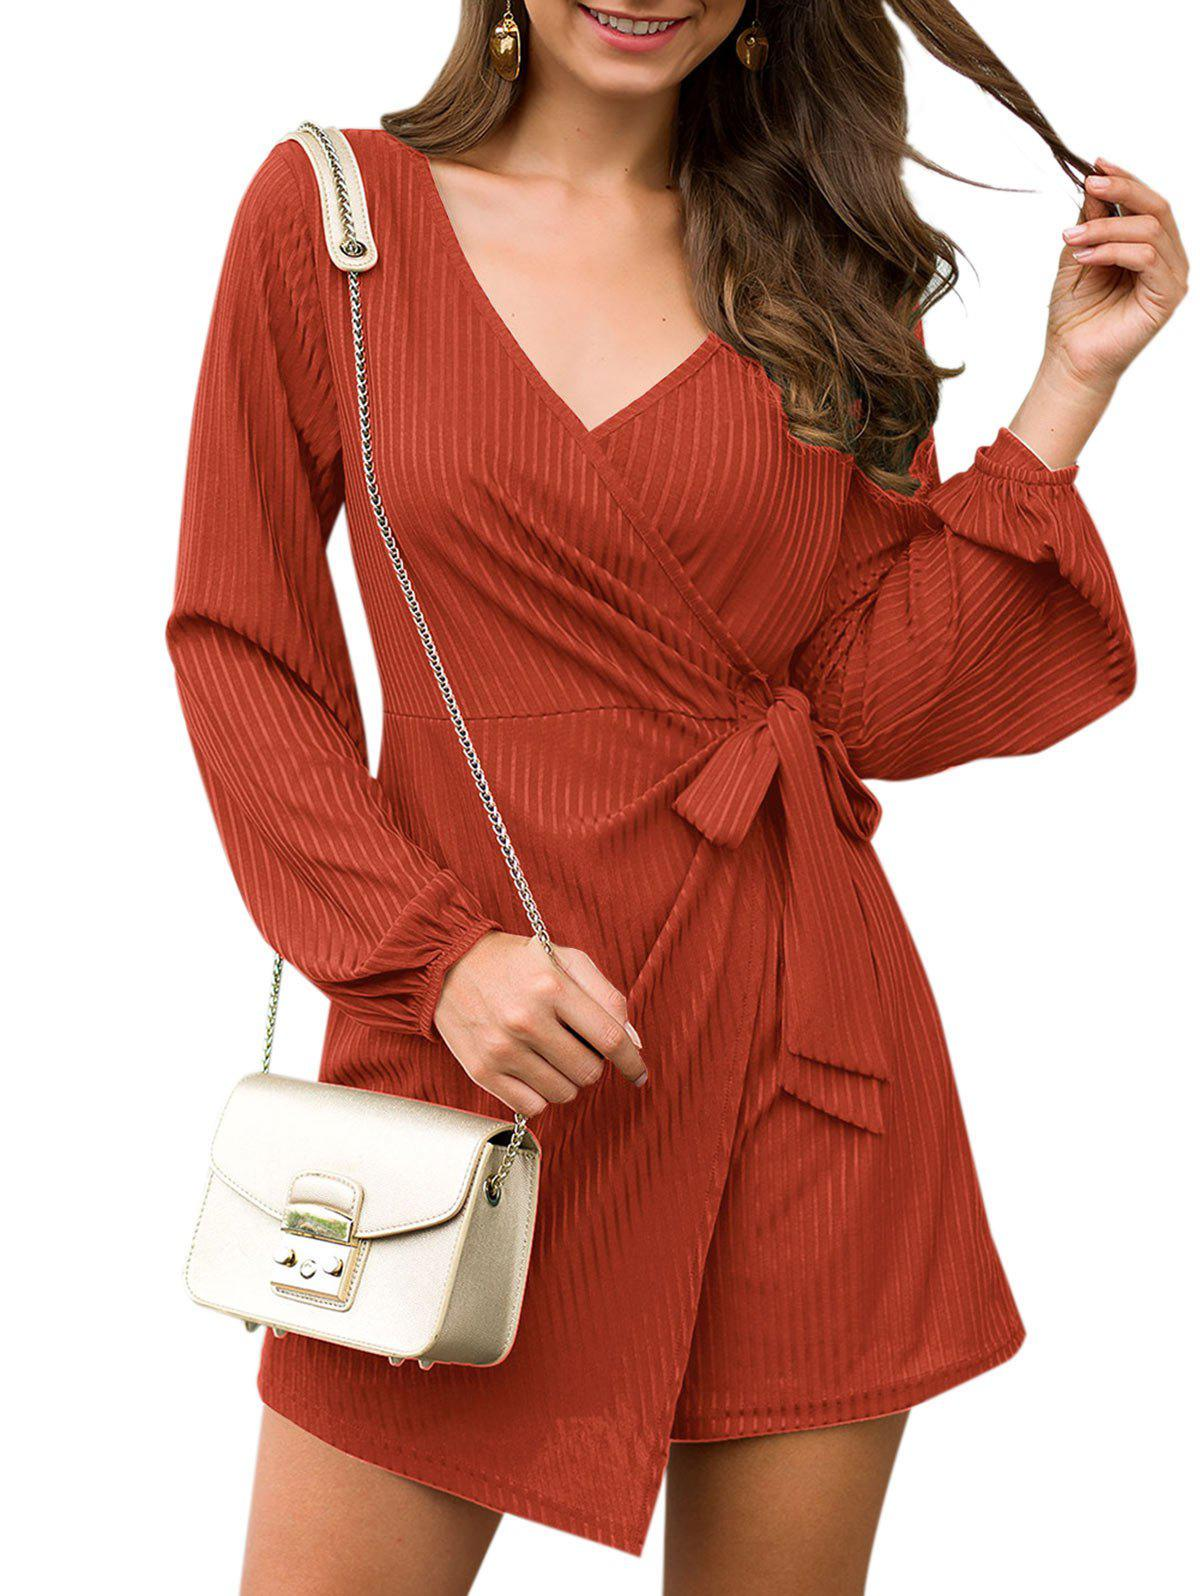 Shadow Striped Plunging Belted Overlay Romper - RED WINE S